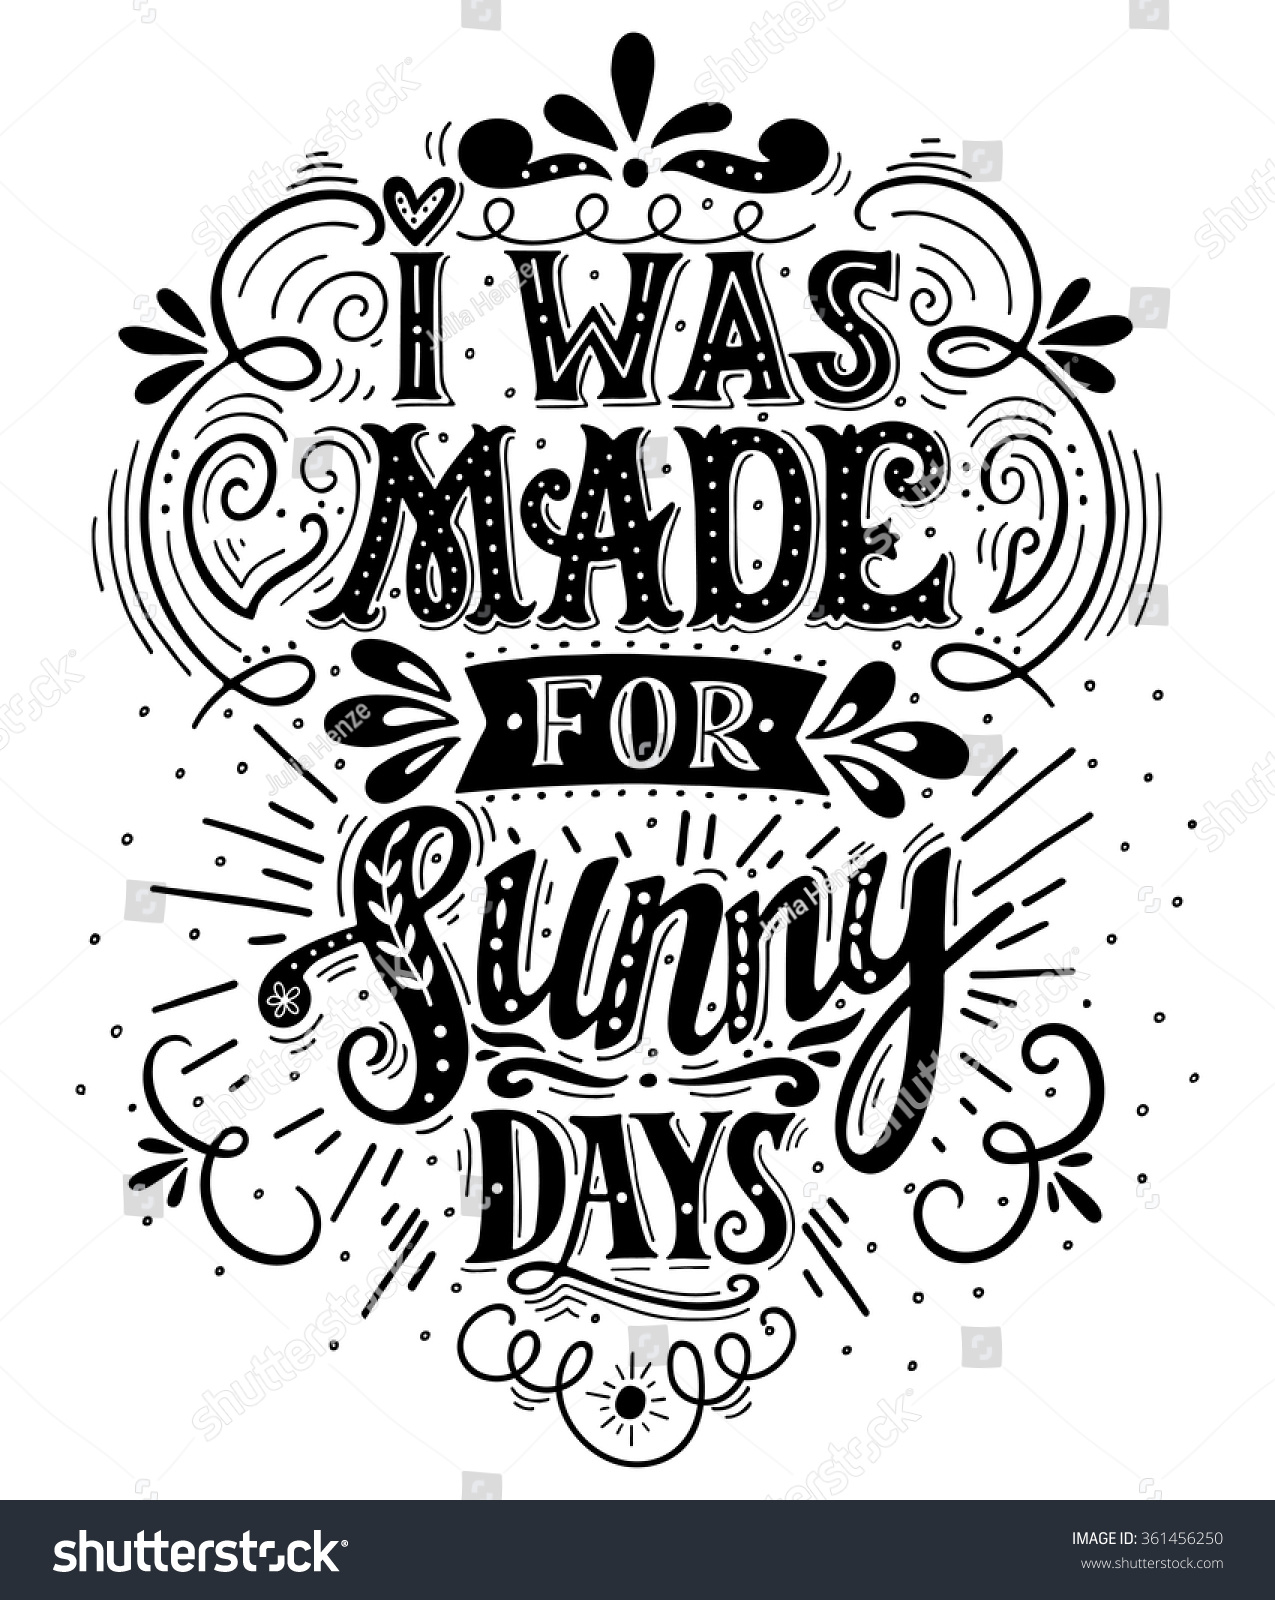 Royalty free i was made for sunny days … stock